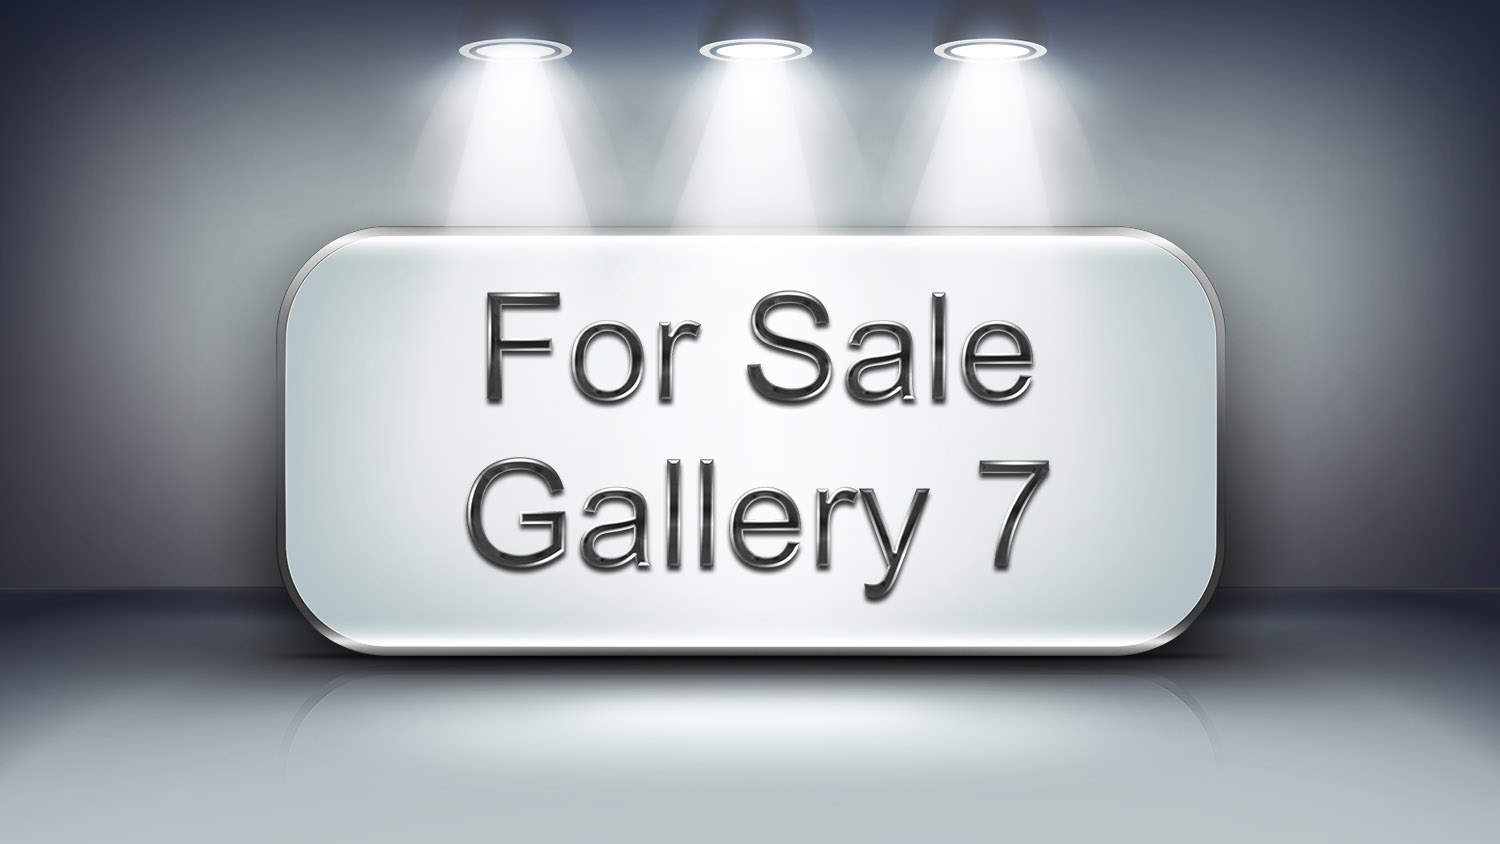 For Sale Gallery 7